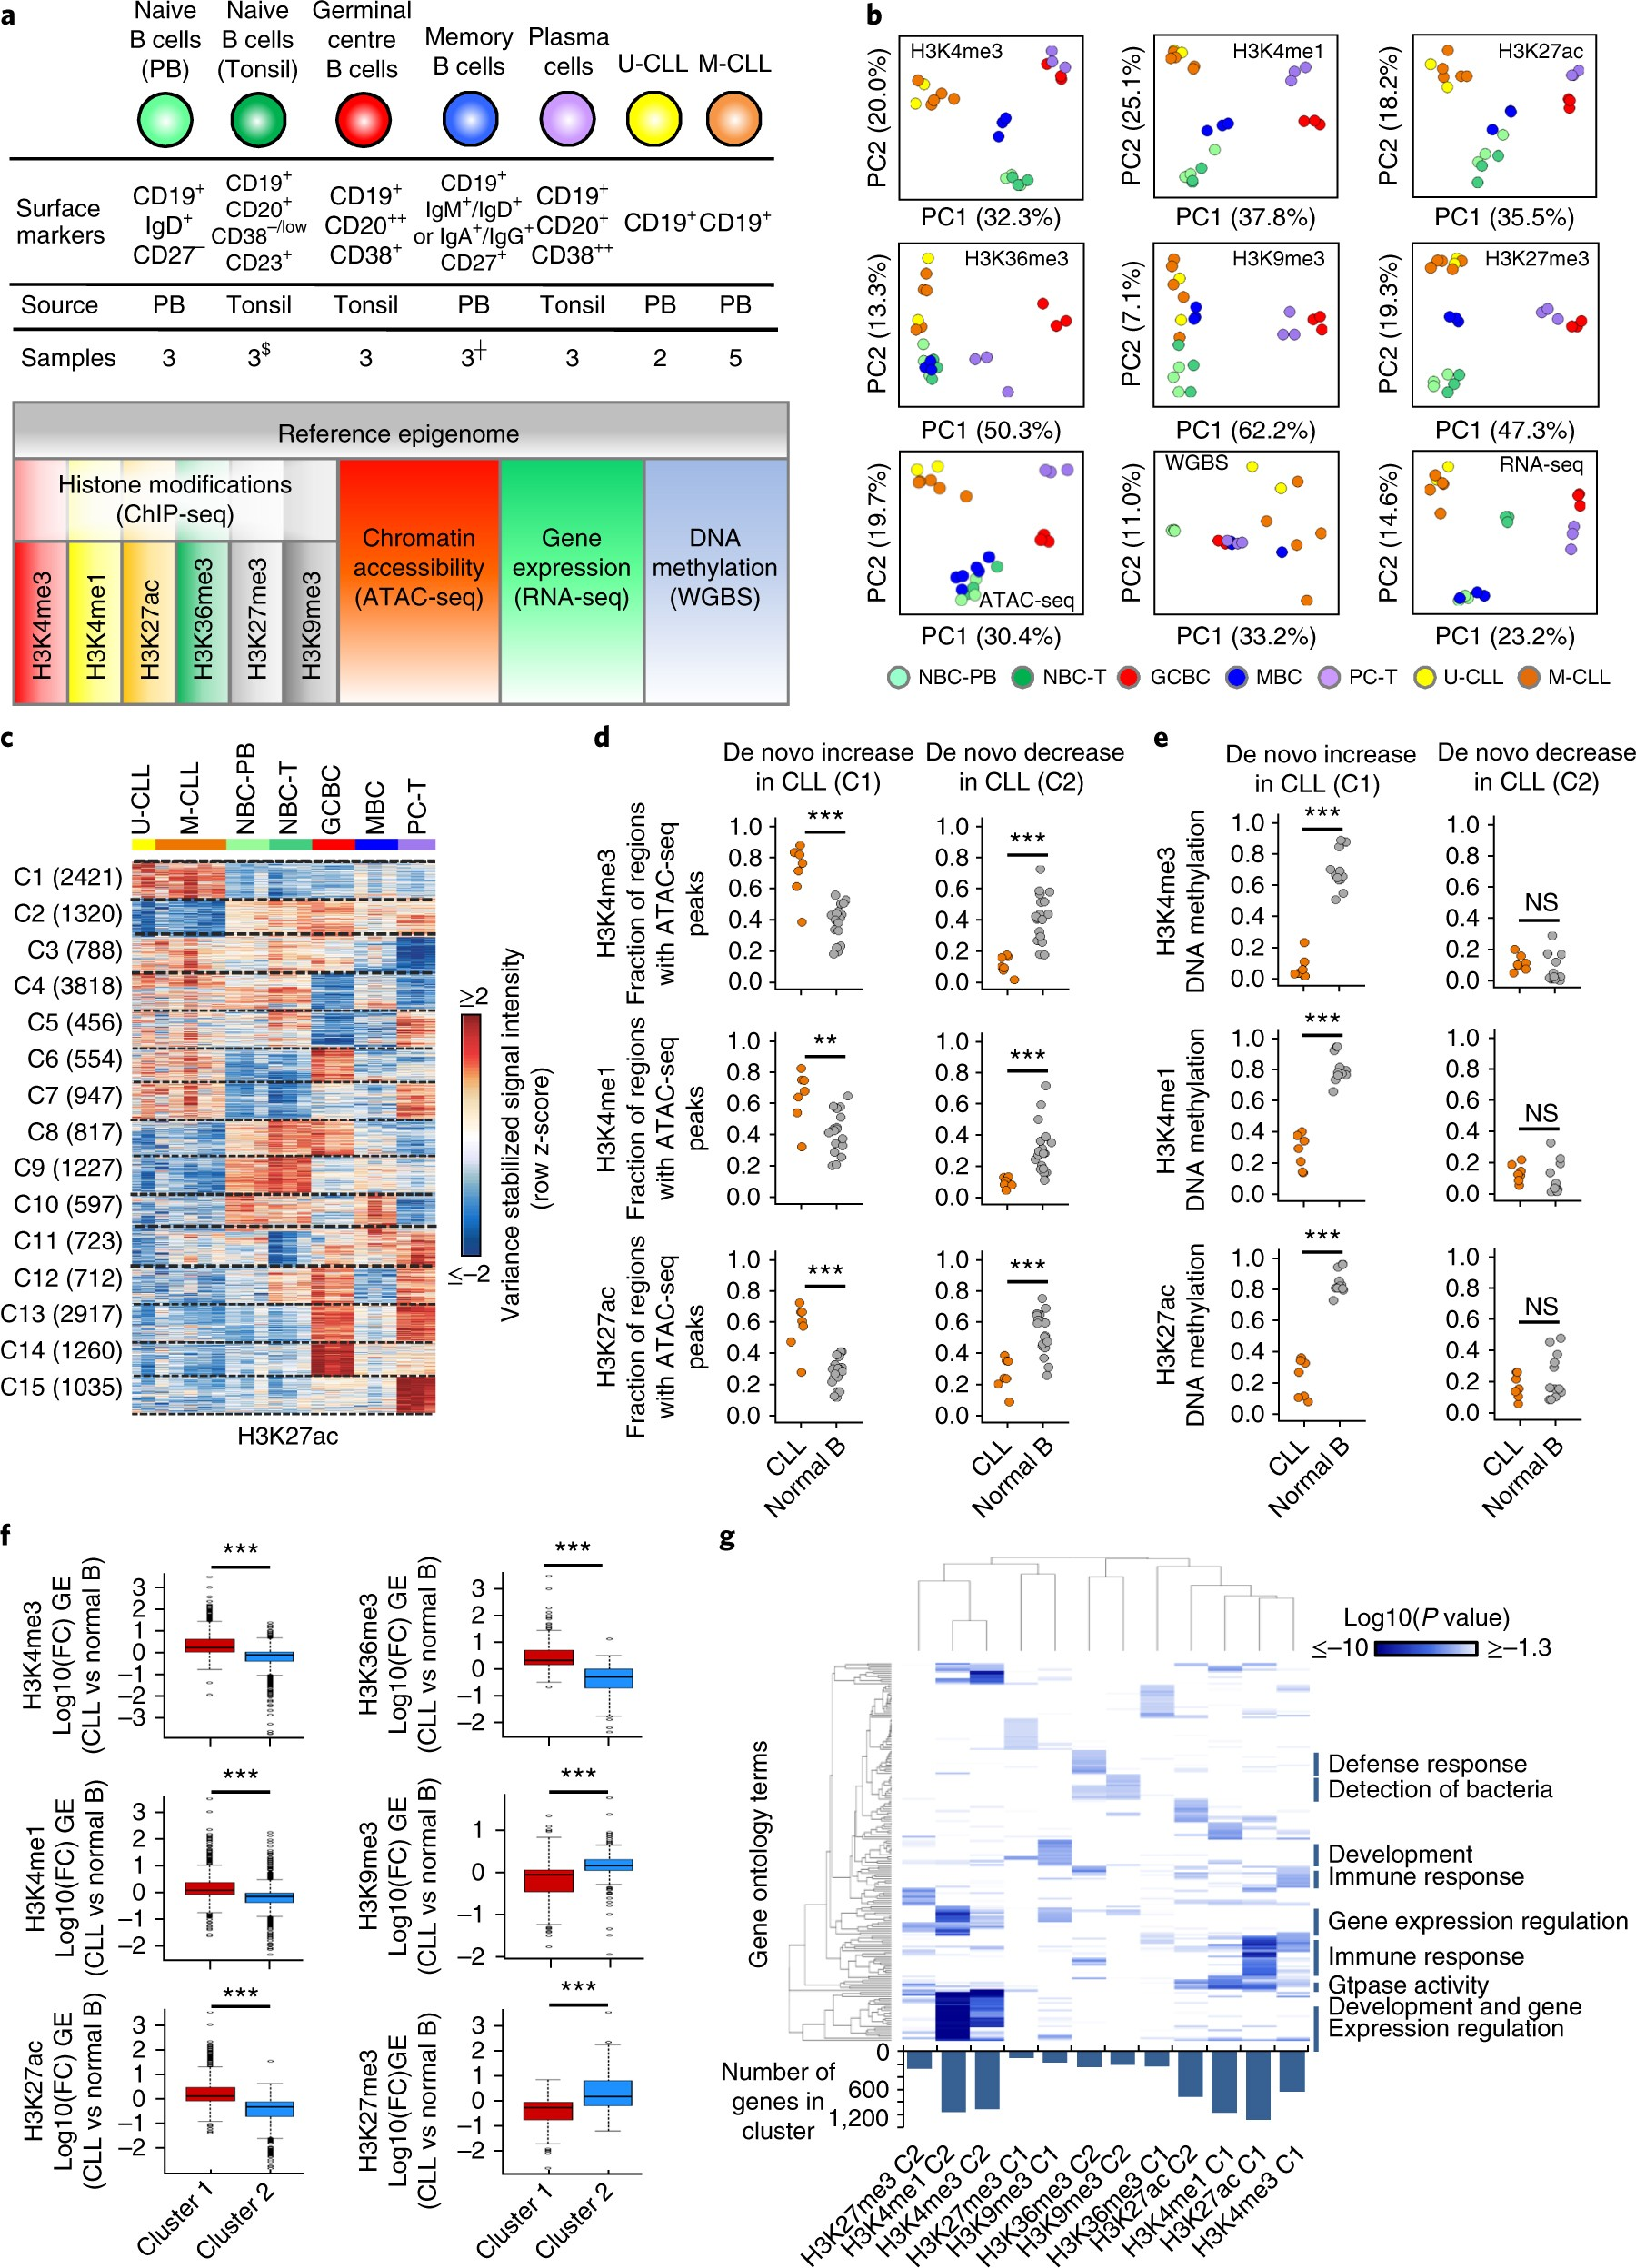 The reference epigenome and regulatory chromatin landscape of